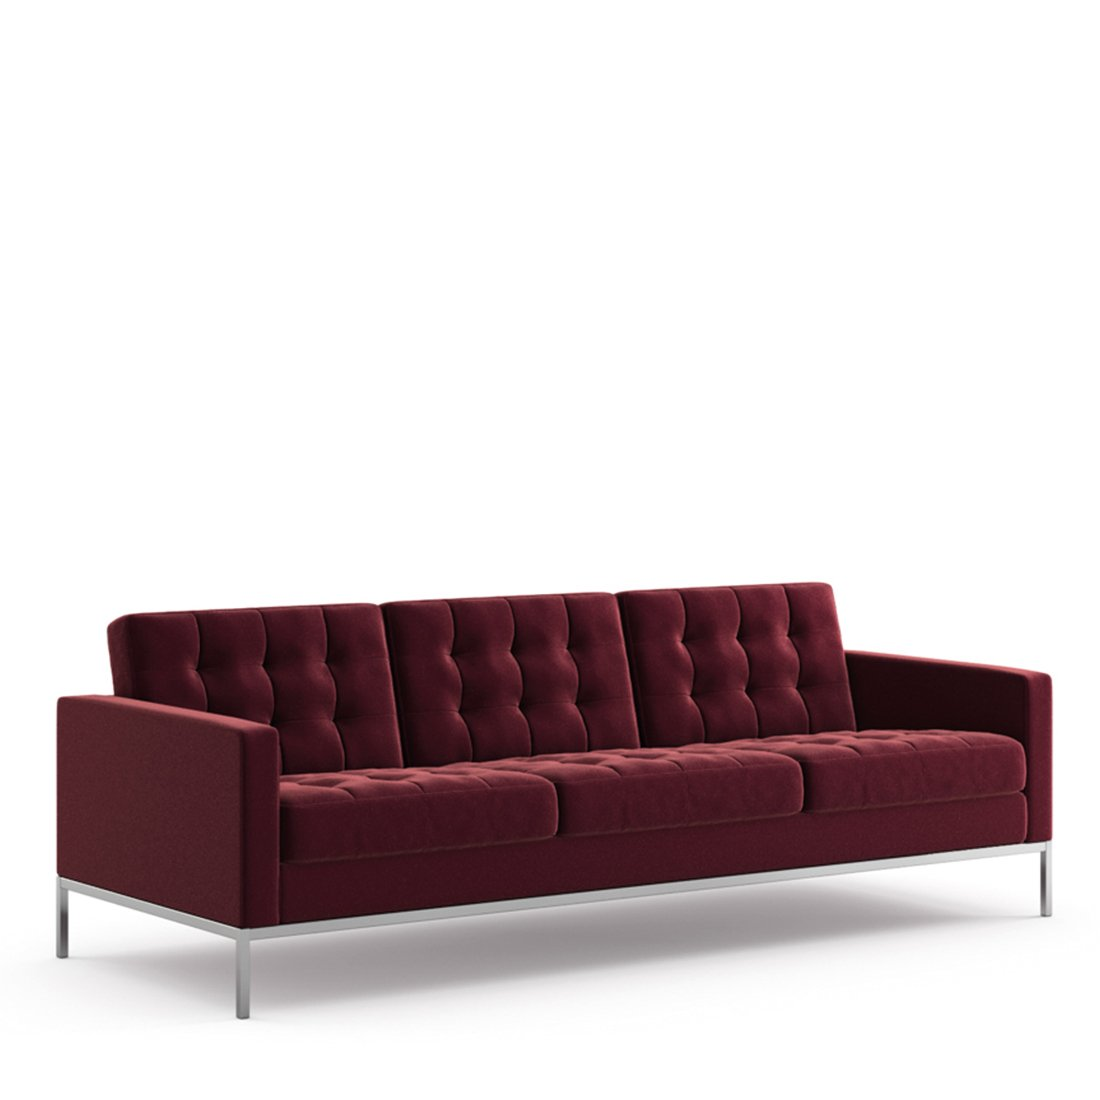 Knoll Florence Knoll Sofa Relax 3 zits